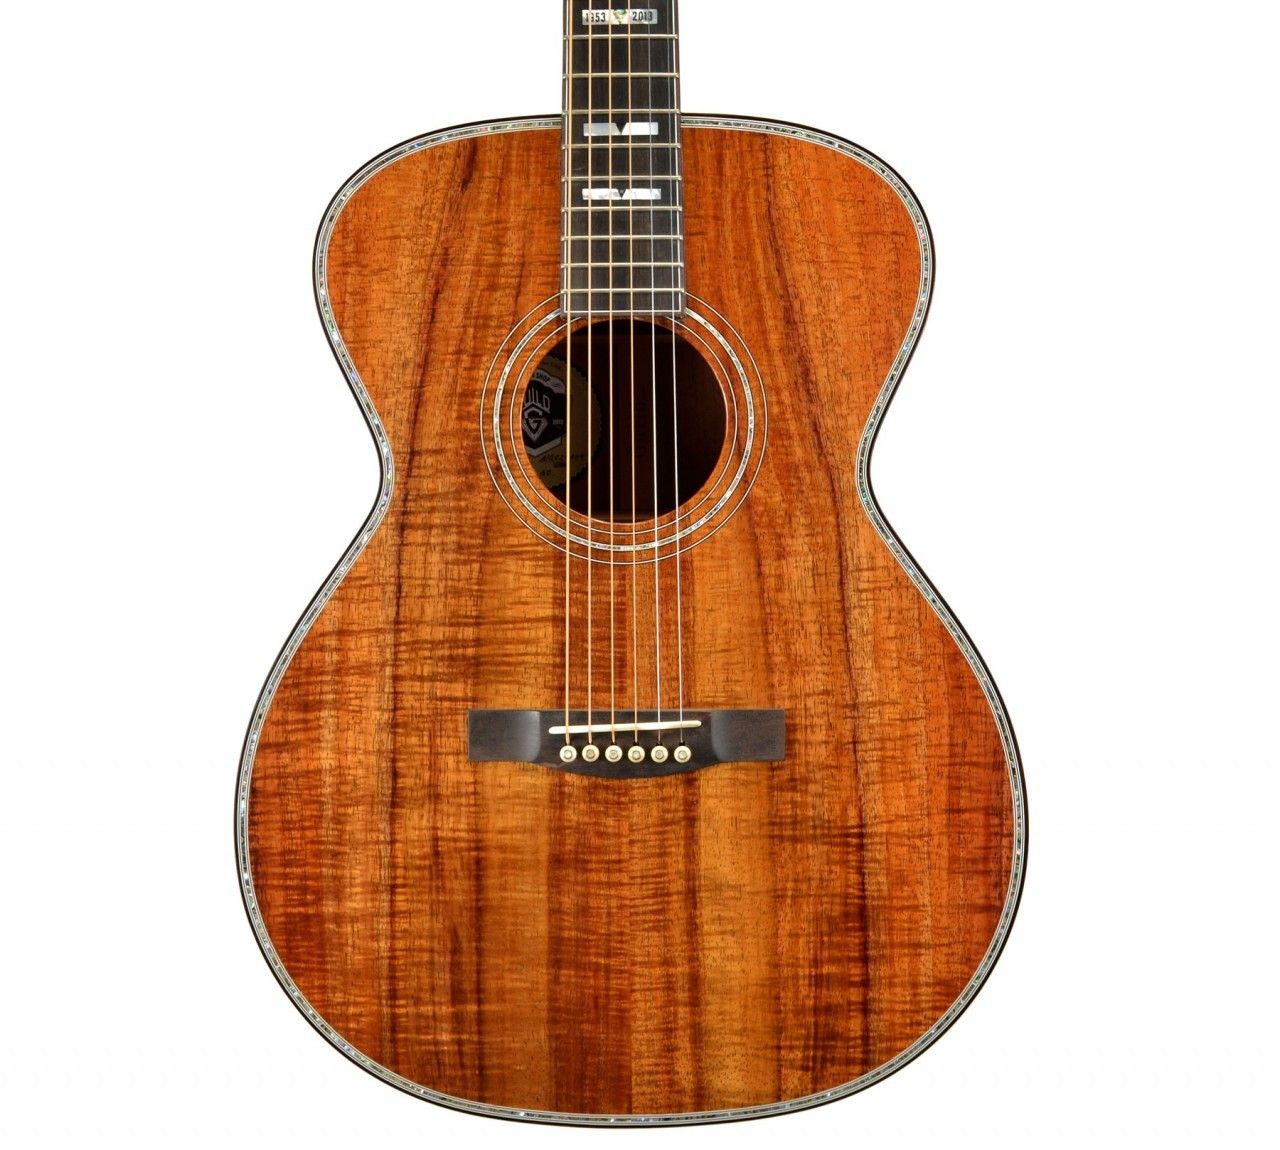 The Guild Custom Shop S First Creation Is The 60th Anniversary Model A Limited Edition Run Of 60 Finely Appointed Acoustic G Guild Guitars Guitar Design Guitar